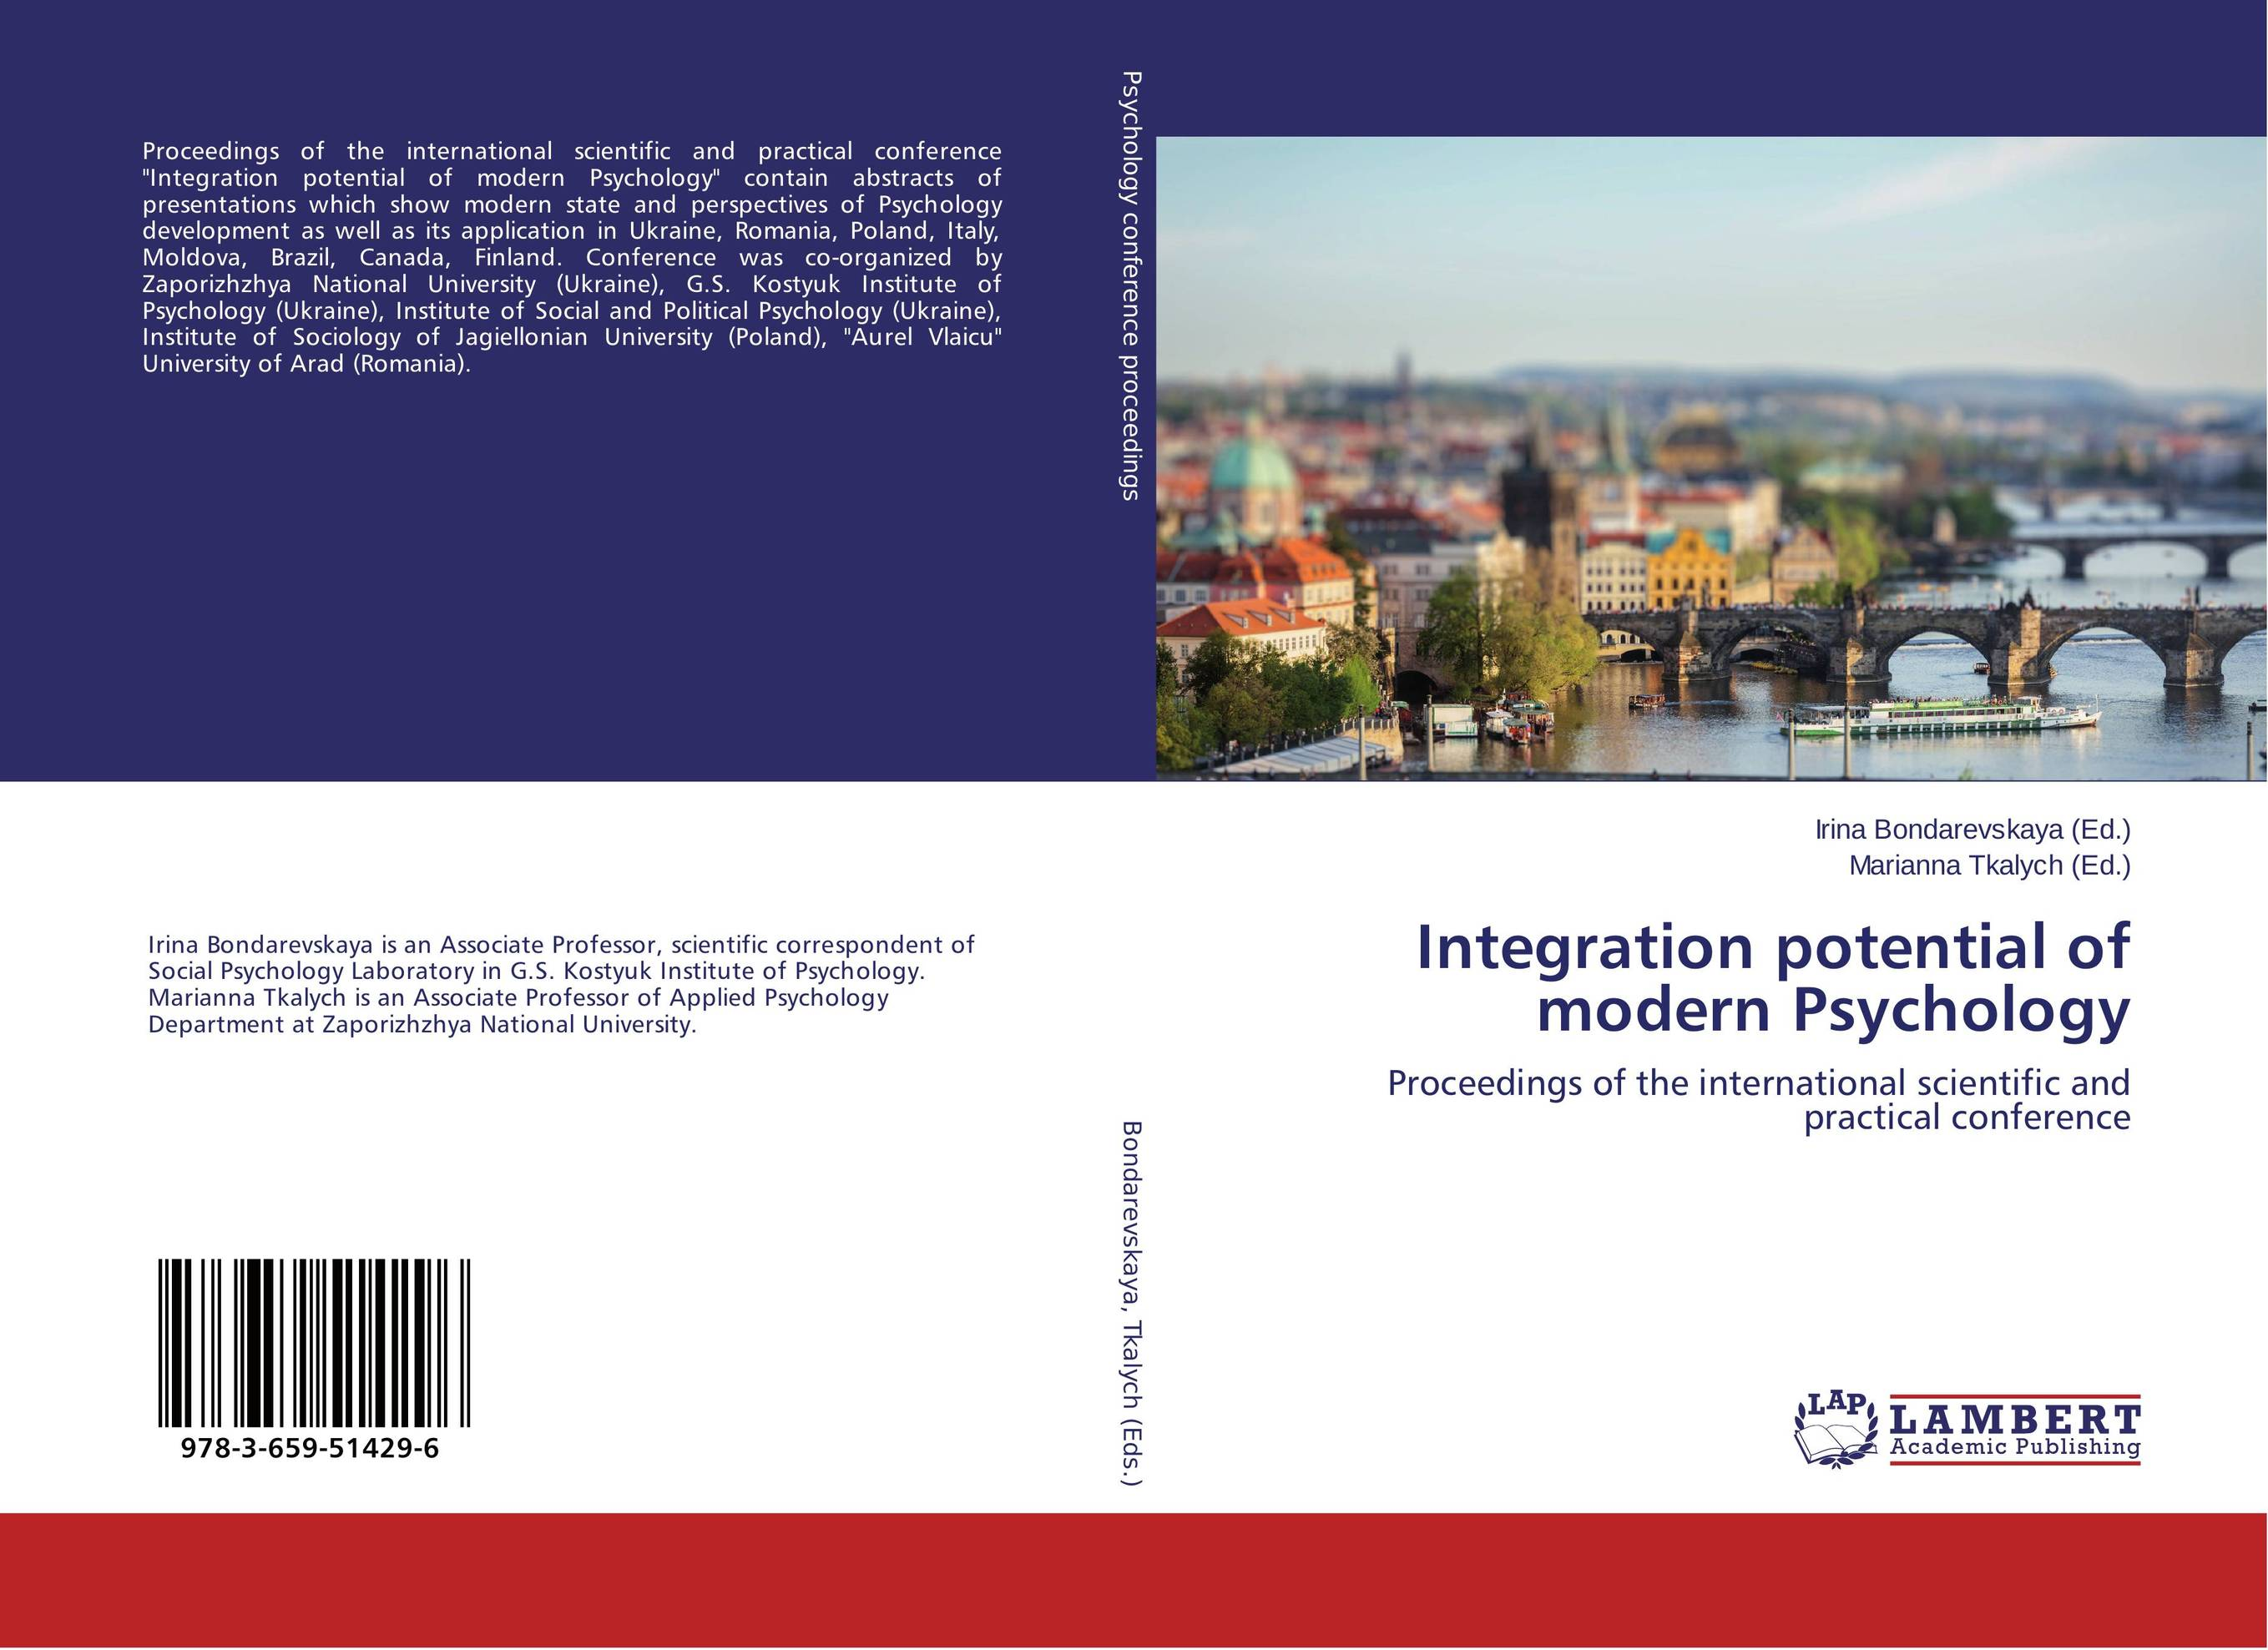 Integration potential of modern Psychology сборник статей resonances science proceedings of articles the international scientific conference czech republic karlovy vary – russia moscow 11–12 february 2016